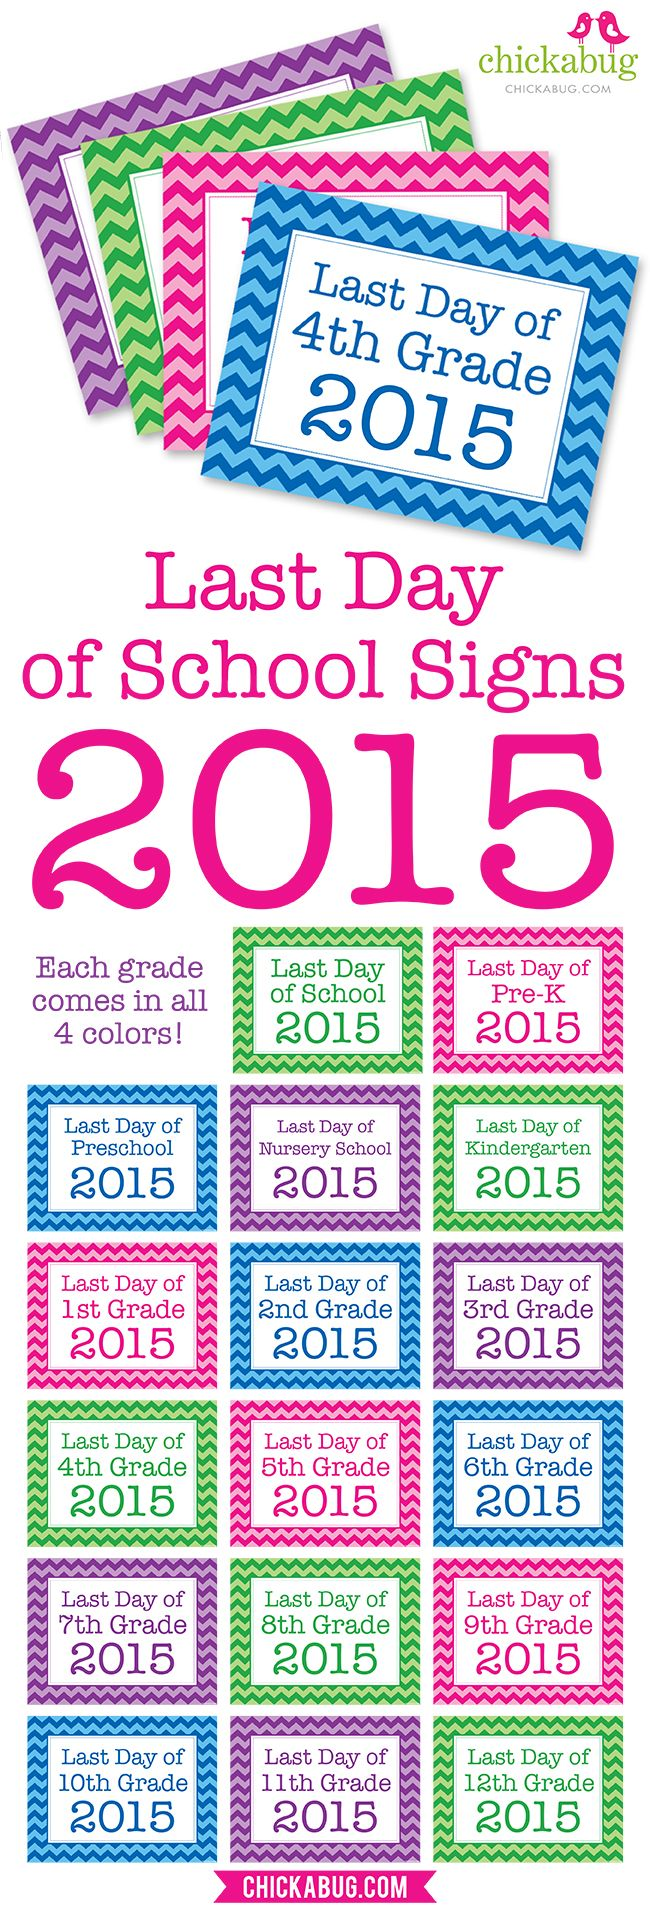 SUPER POPULAR free printable last day of school signs - updated for 2015! EVERY grade in FOUR colors!